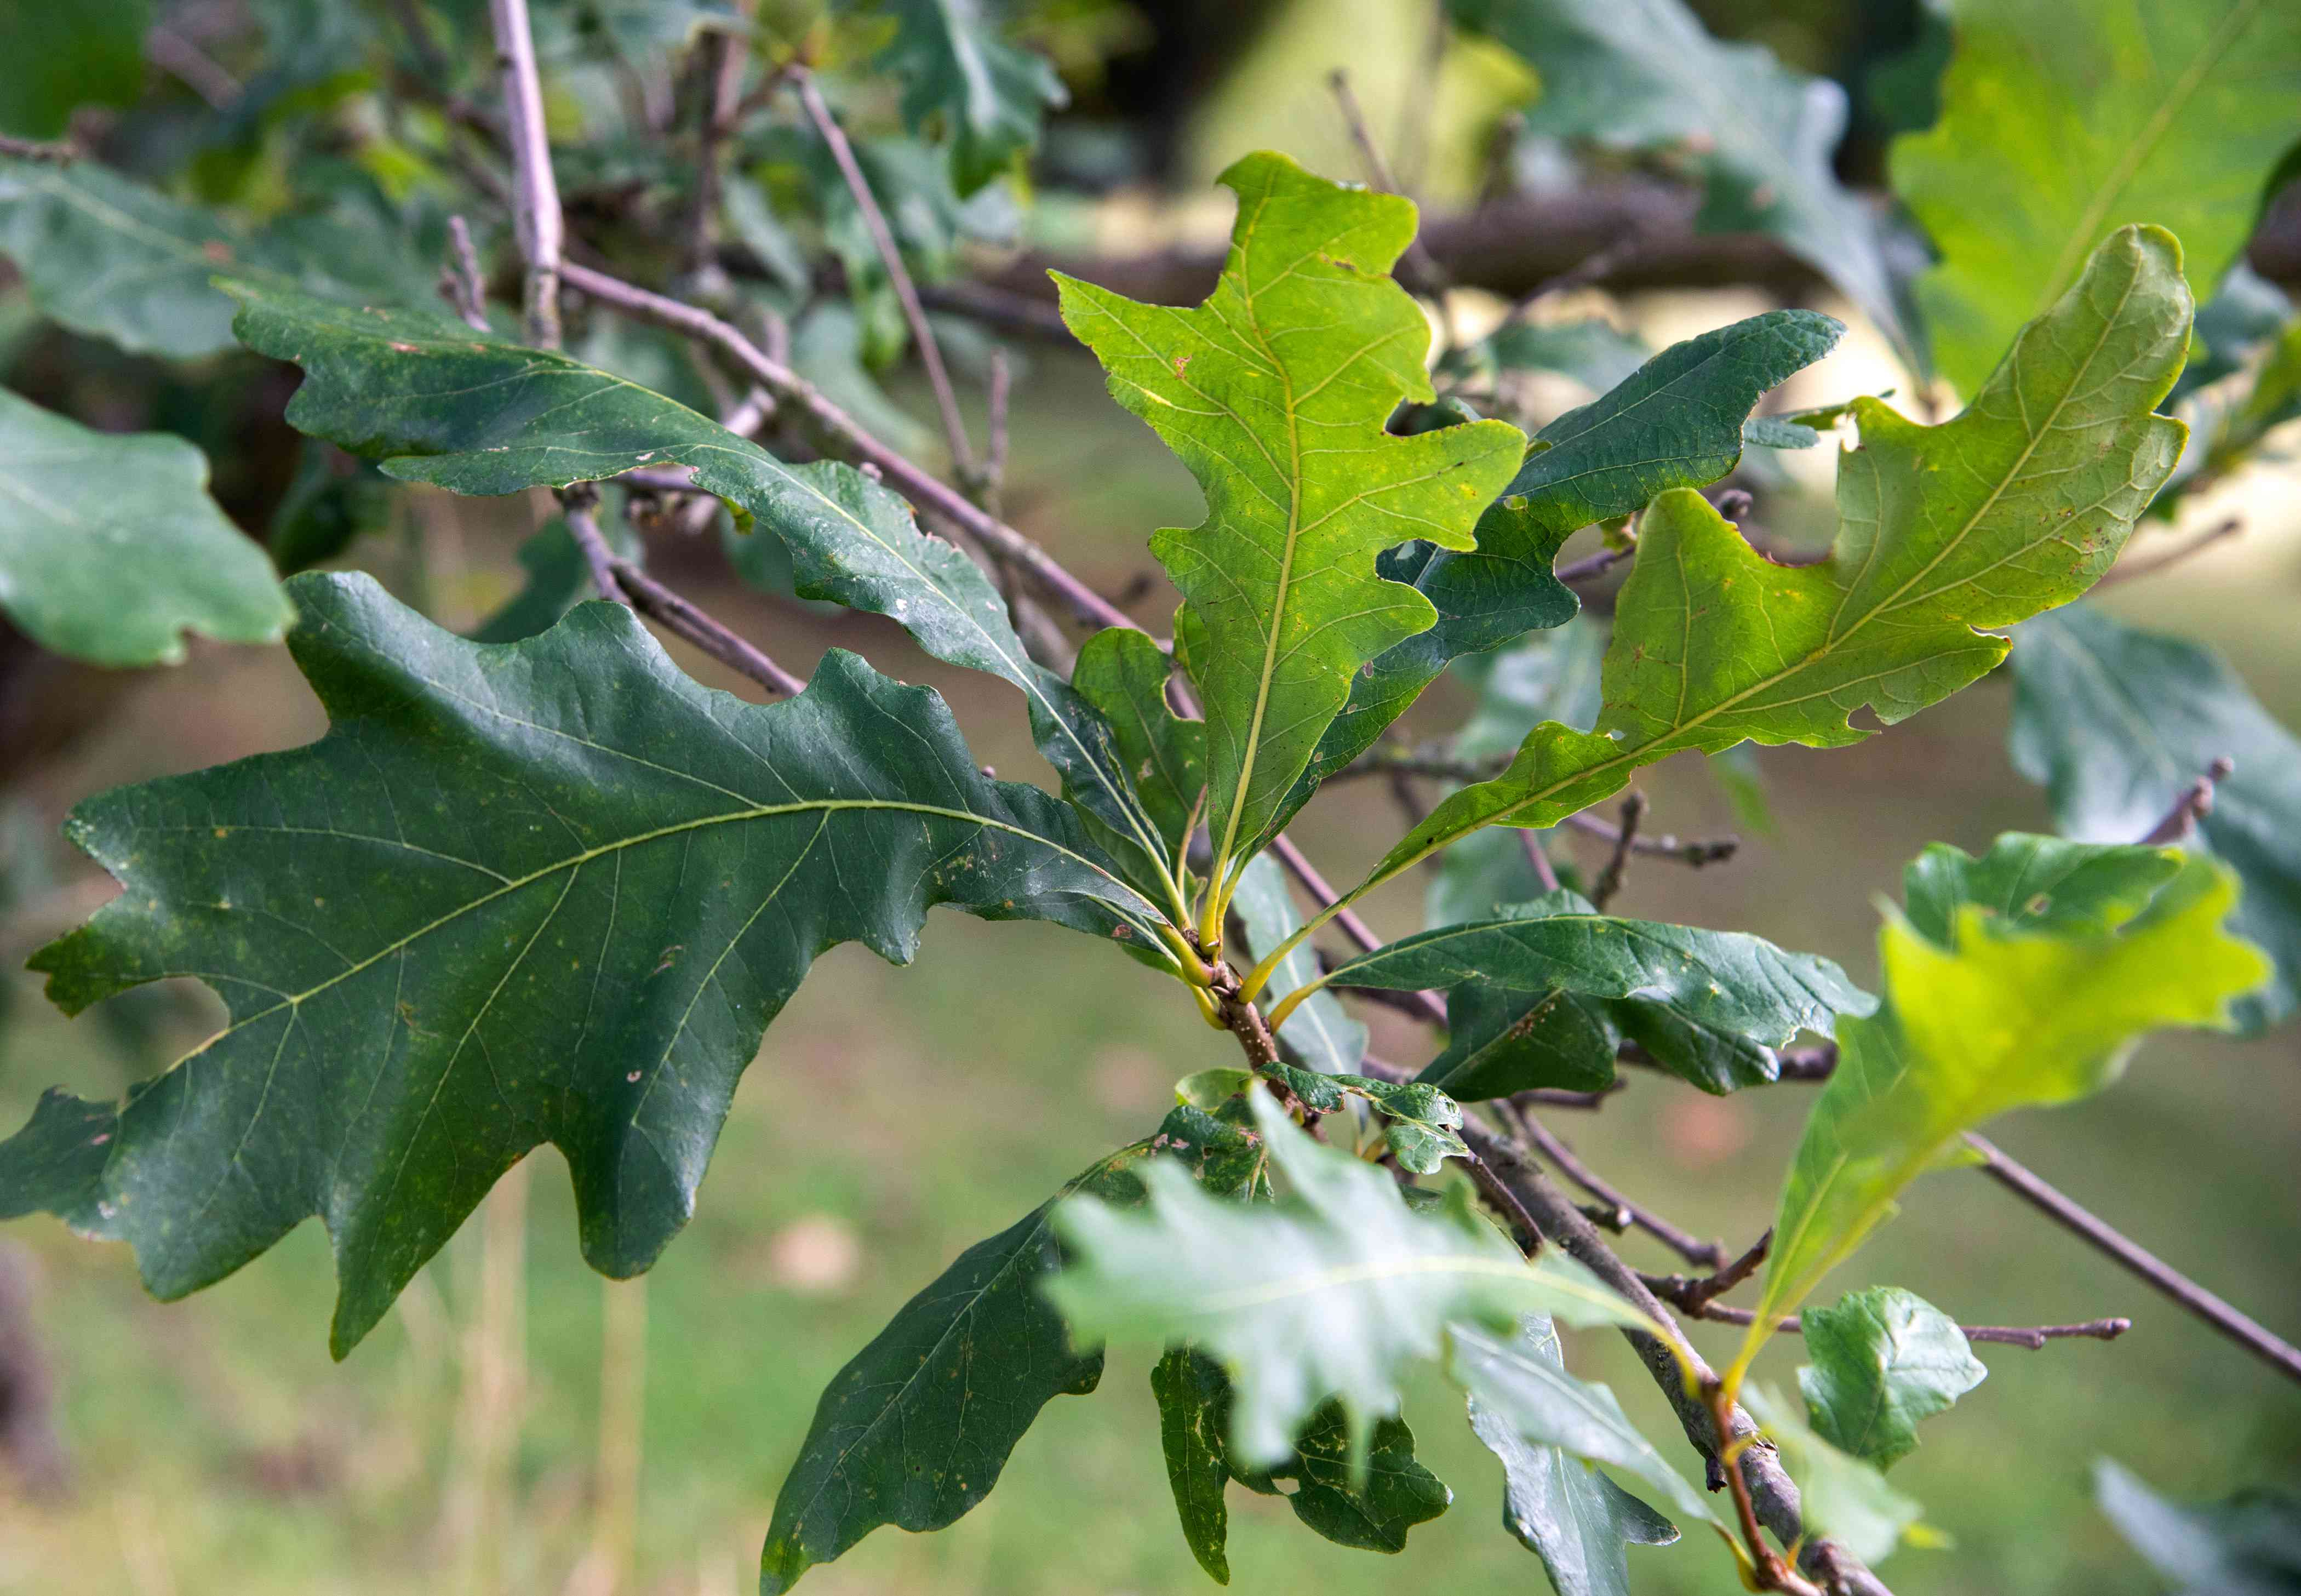 Swamp white oak tree branch with loped leaves closeup